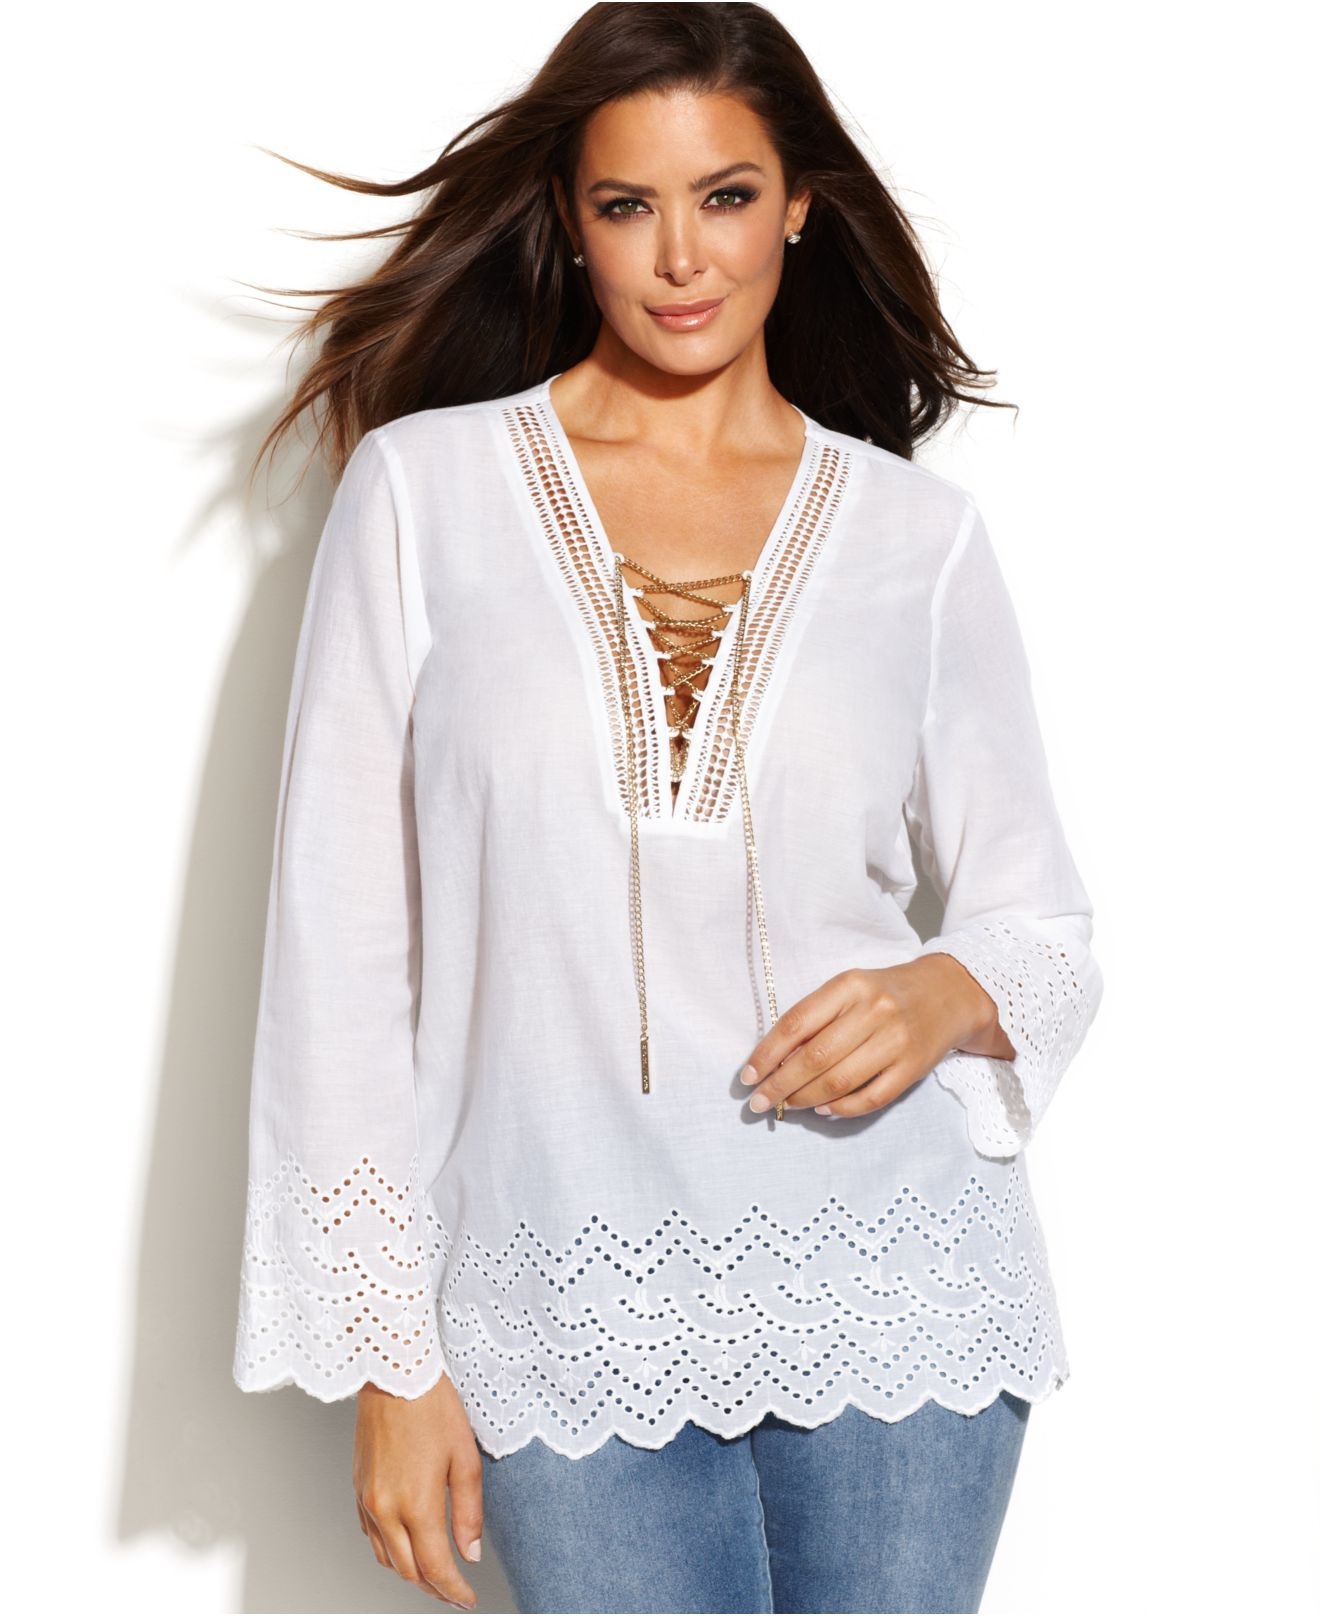 4200736841d Lyst - Michael Kors Michael Plus Size Lace-Up Eyelet Blouse in White